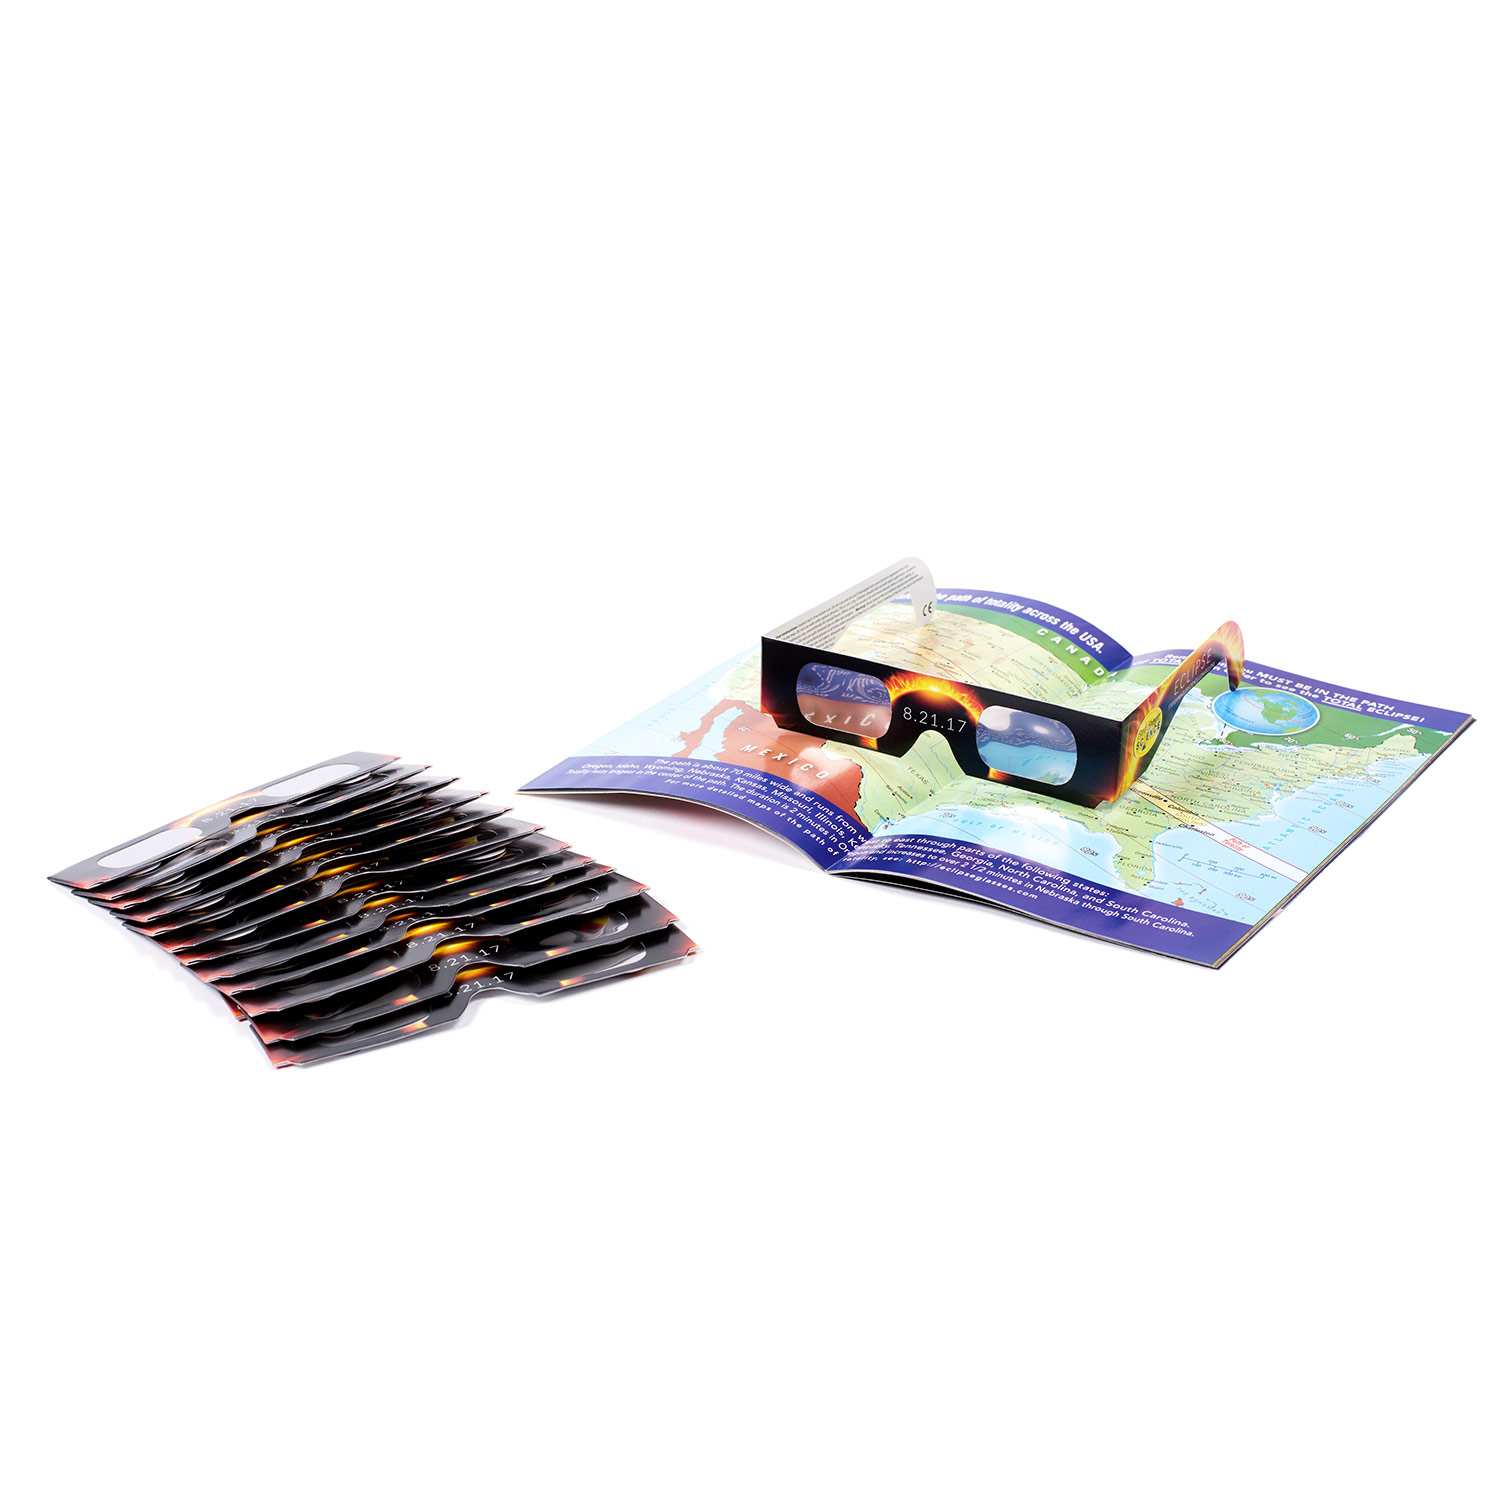 Solar Eclipse Glasses - 15 Pack & Eclipse Book